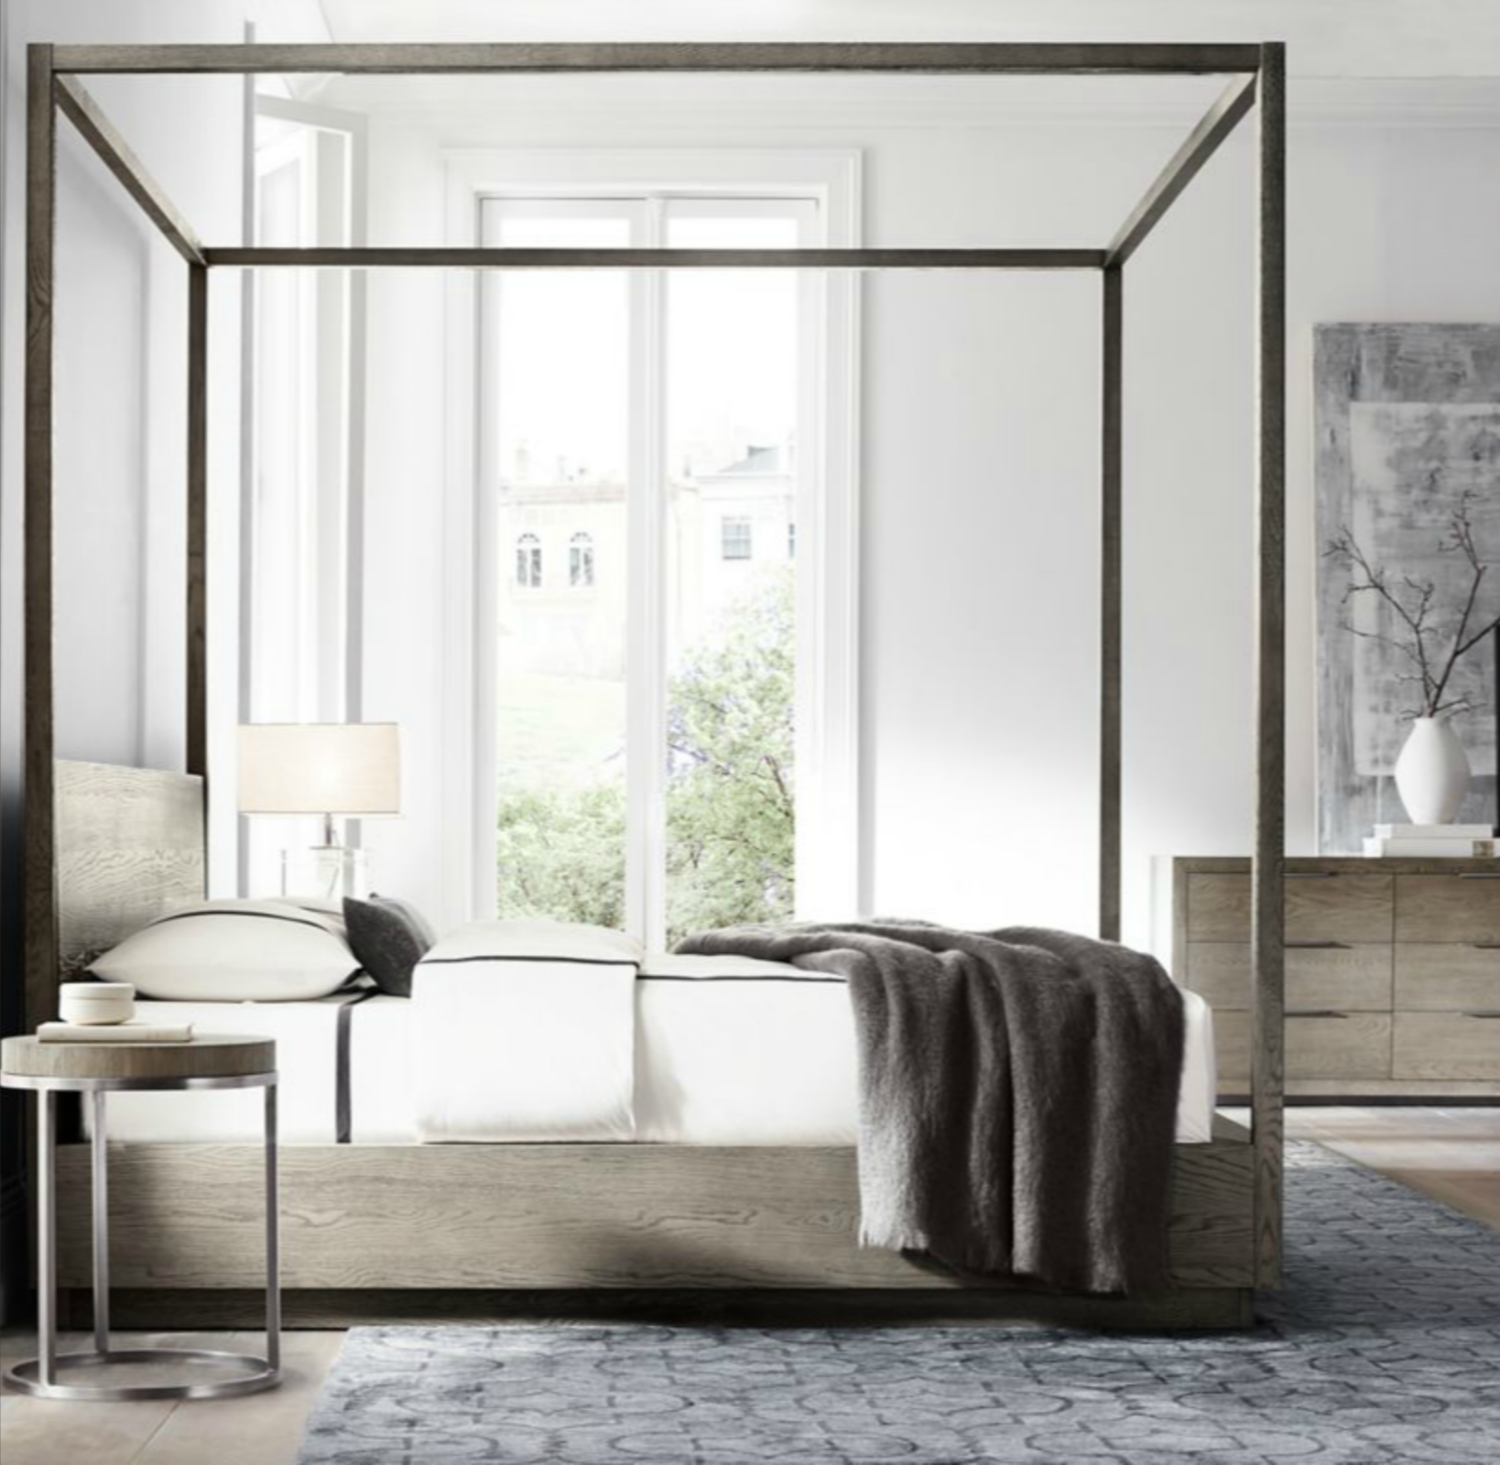 Restoration hardware bedroom - Restoration Hardware Modern Machinto Four Poster Bed Starting At 3695